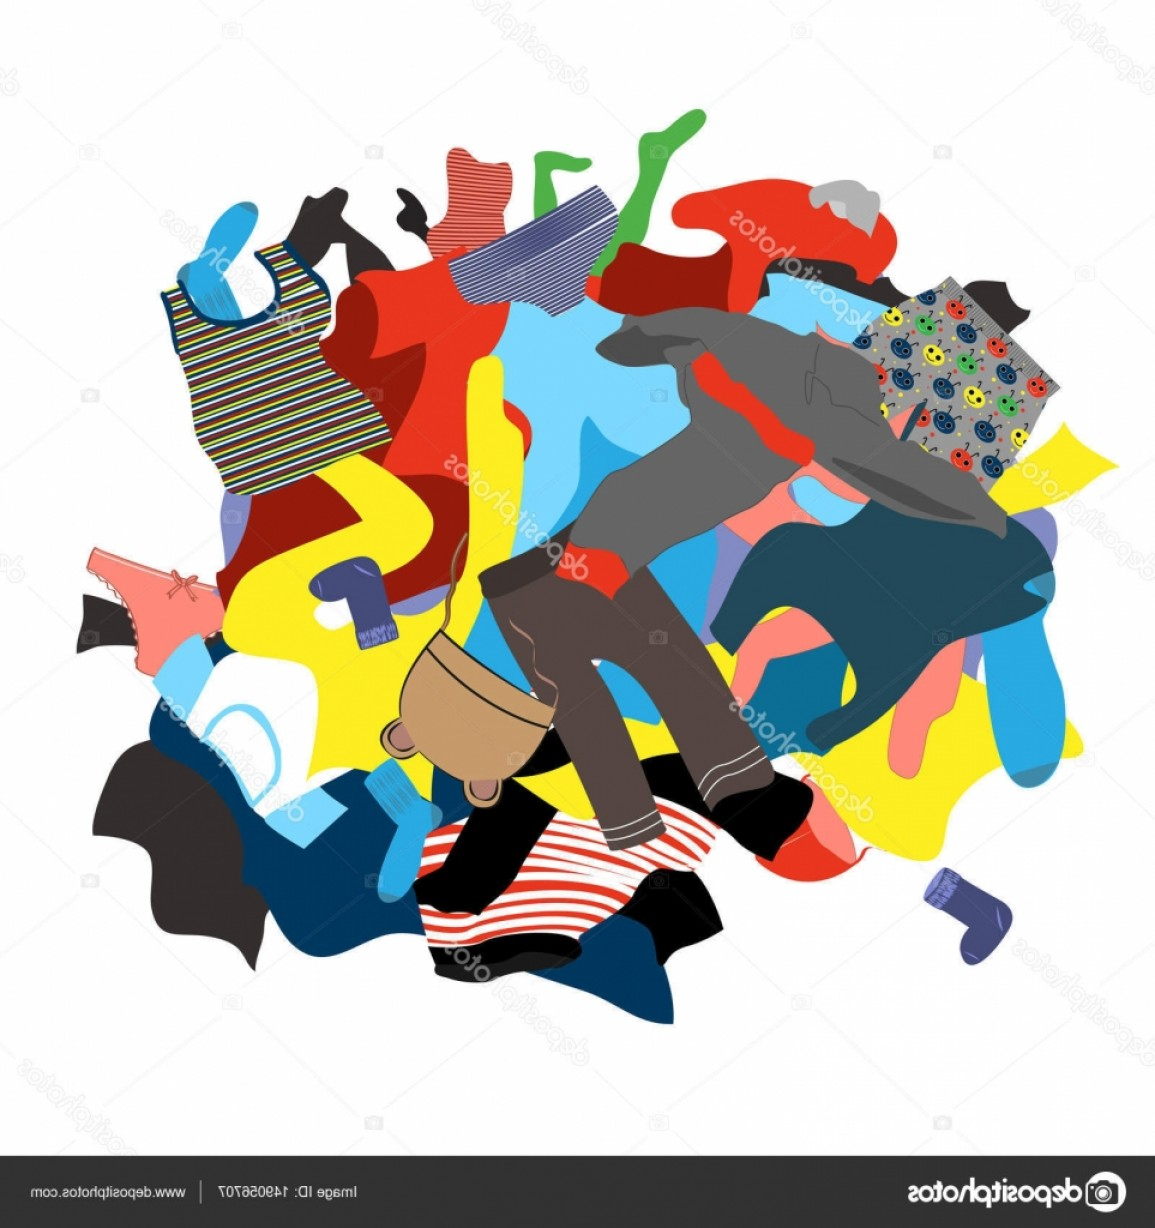 Clothes For Washing Vector: Stock Illustration Illustration Featuring A Messy Pile